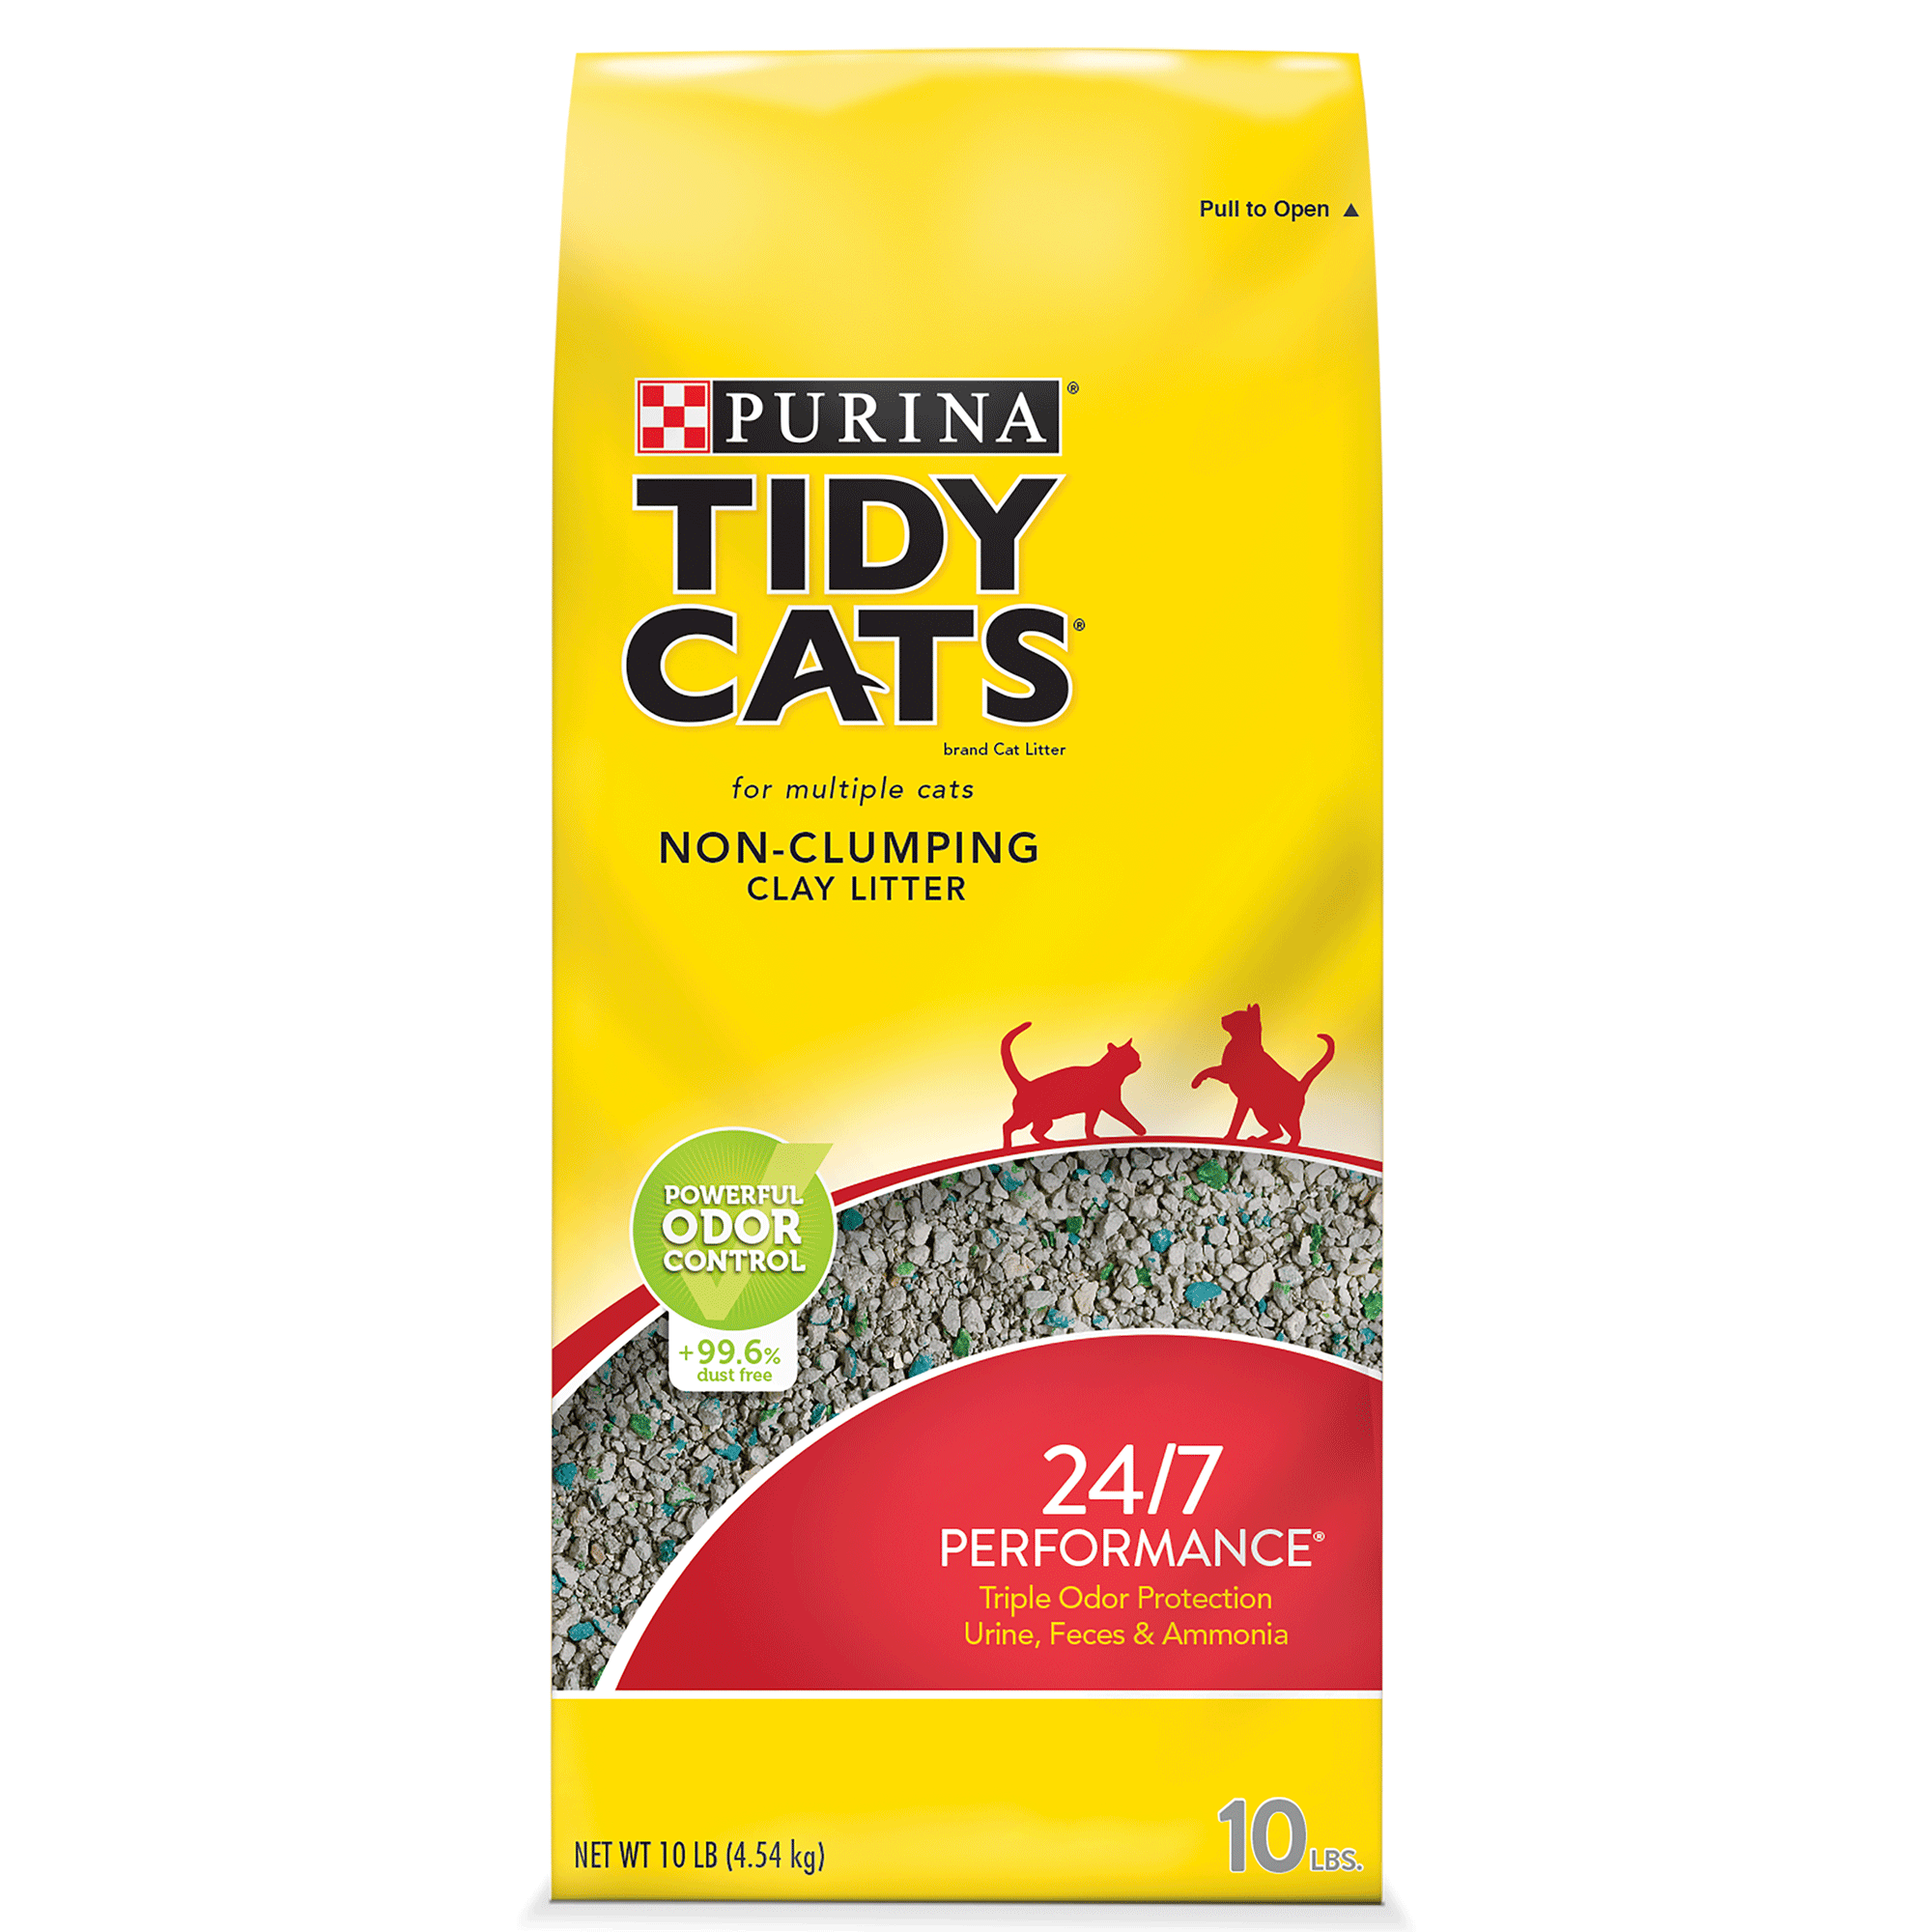 Purina Tidy Cats 24/7 Performance for Multiple Cats Non-Clumping Cat Litter - 10 lb. Bag